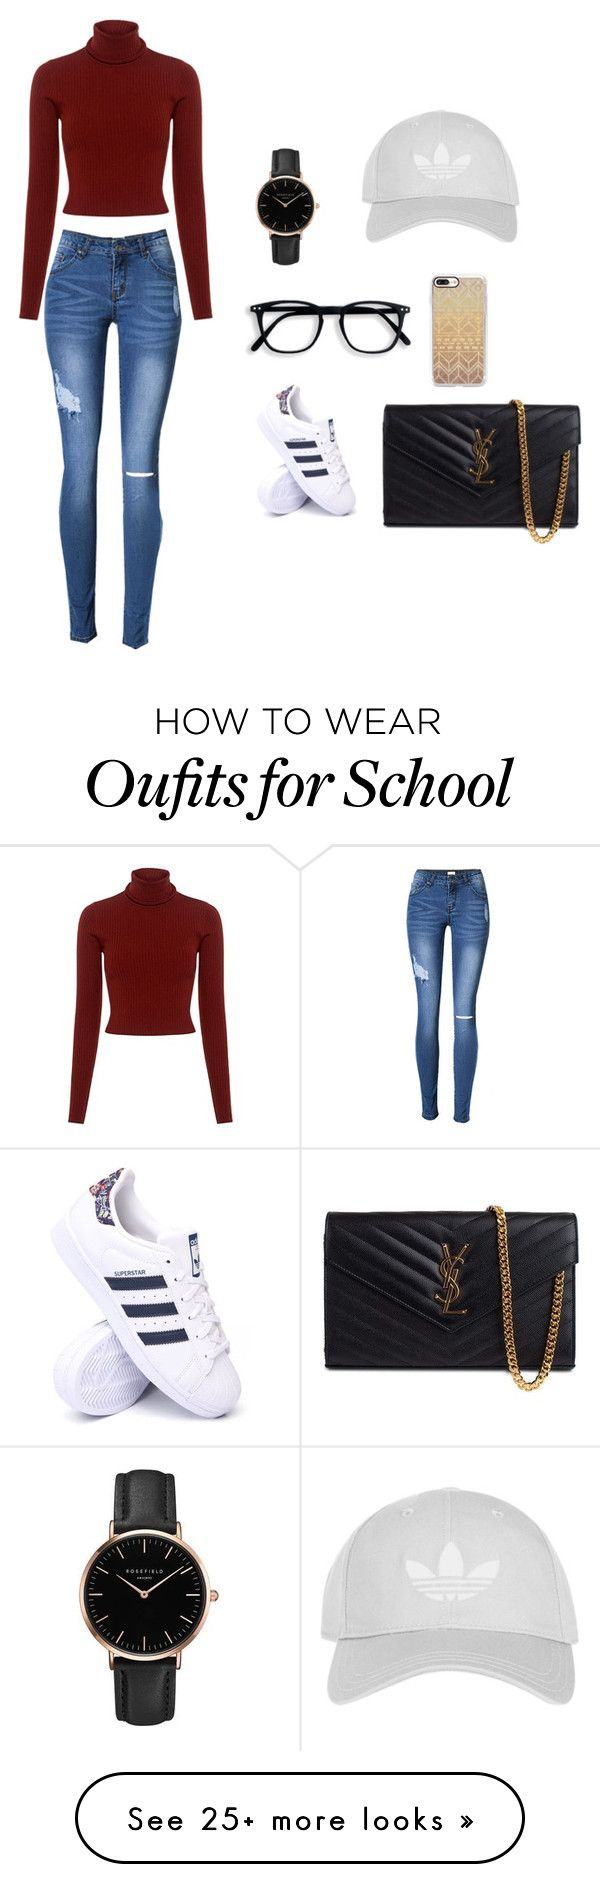 """""""Back to school"""" by ginnadwipuetribadjadji on Polyvore featuring A.L.C., adidas, Yves Saint Laurent, Casetify and Topshop"""